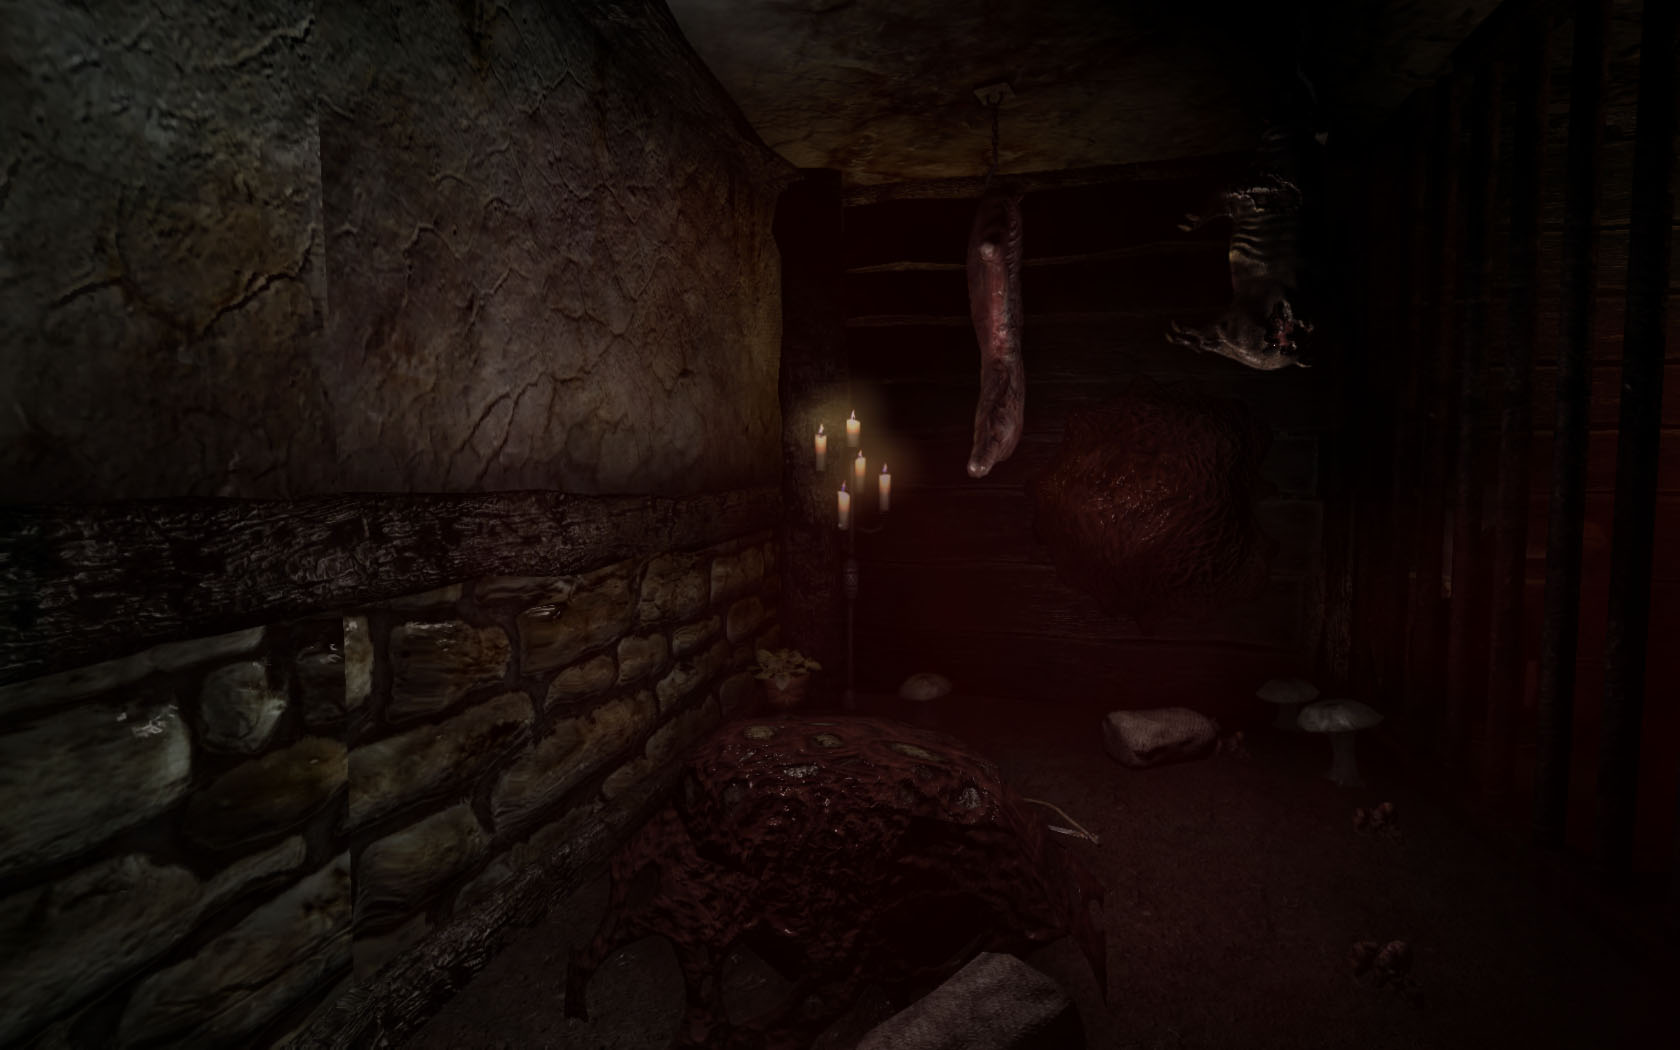 Horror Cellar File Mod Db